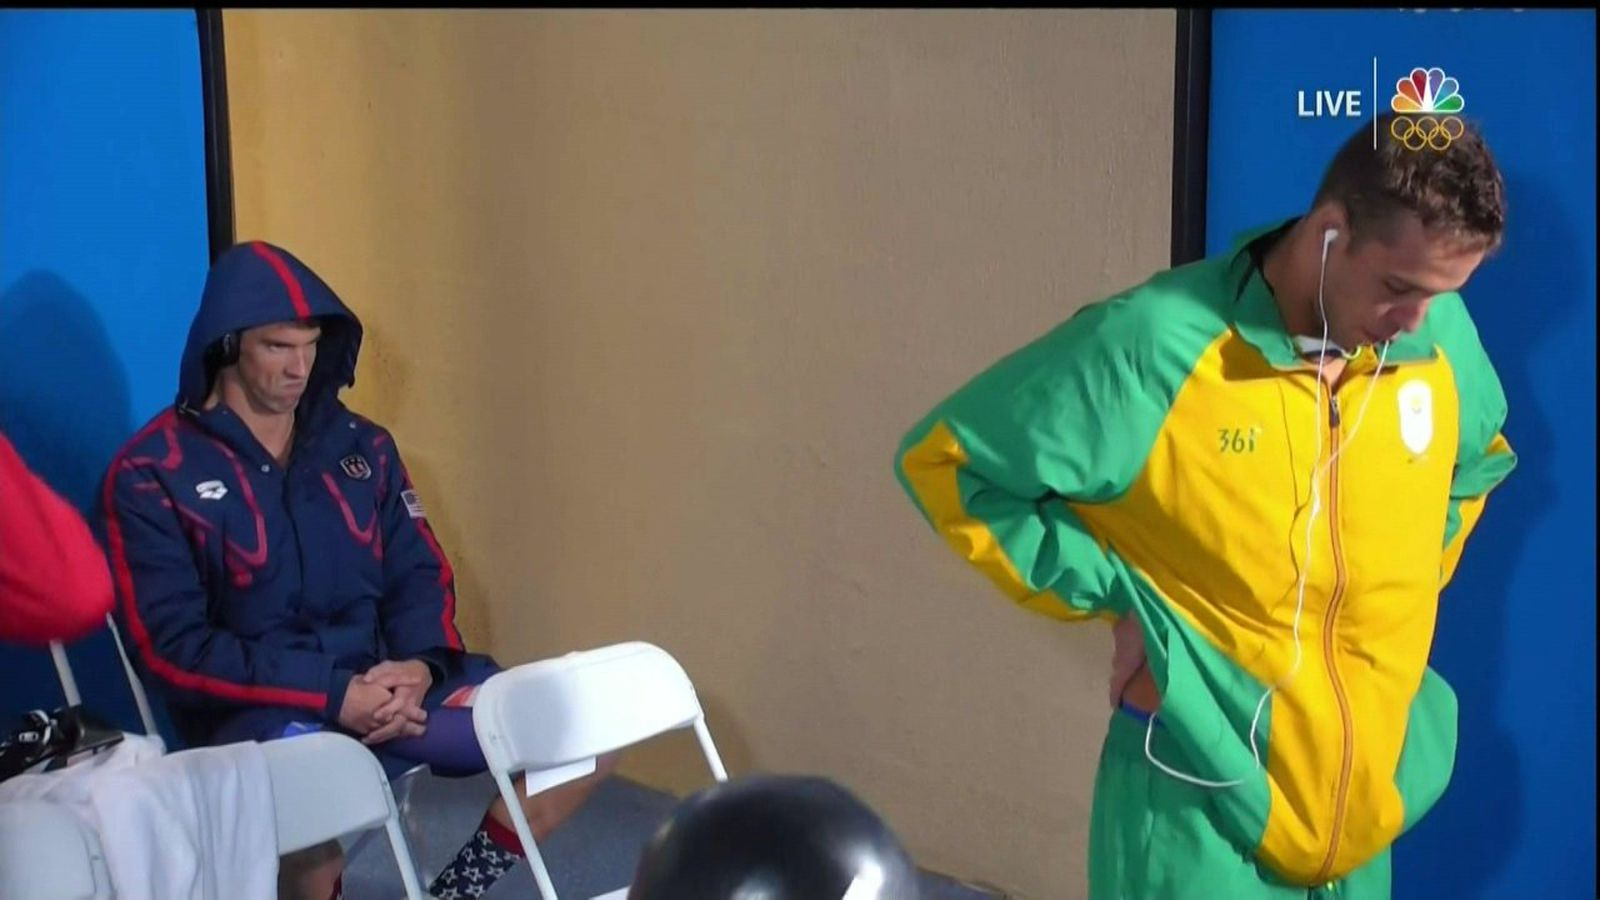 The Rivalry Between Michael Phelps And Chad Le Clos Turned